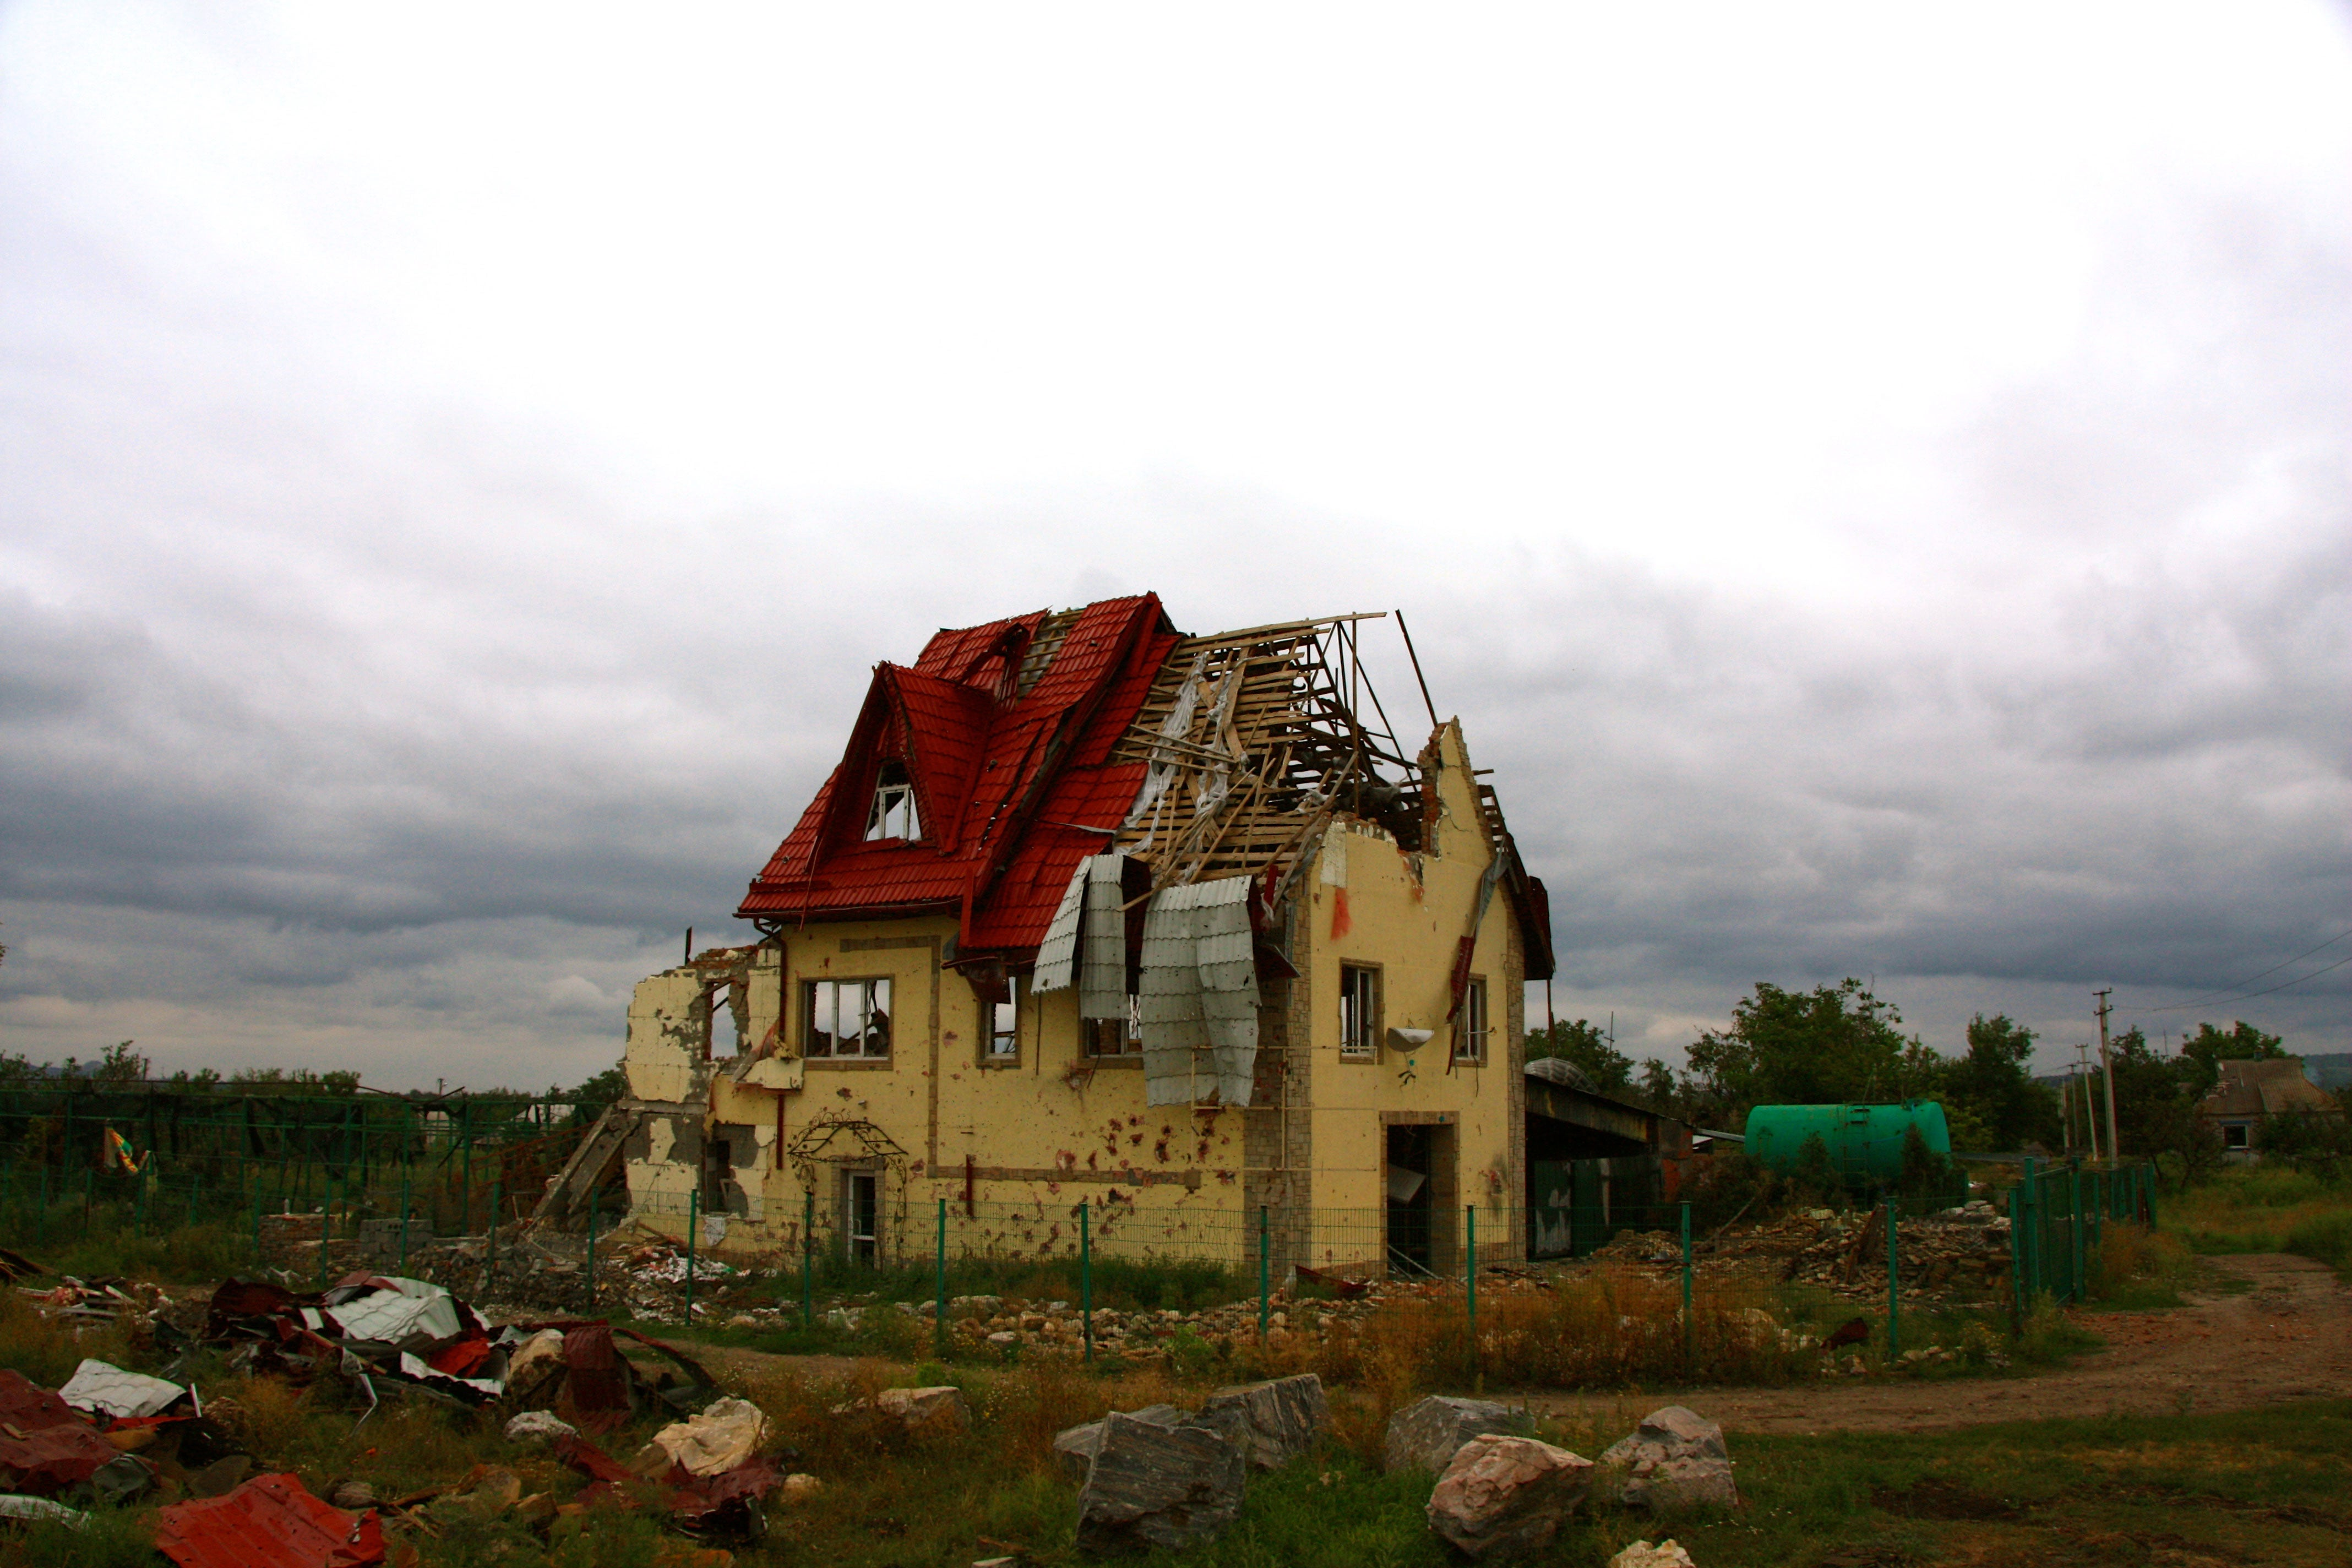 Across eastern Ukraine, towns have been left ruins after nearly three years of war.